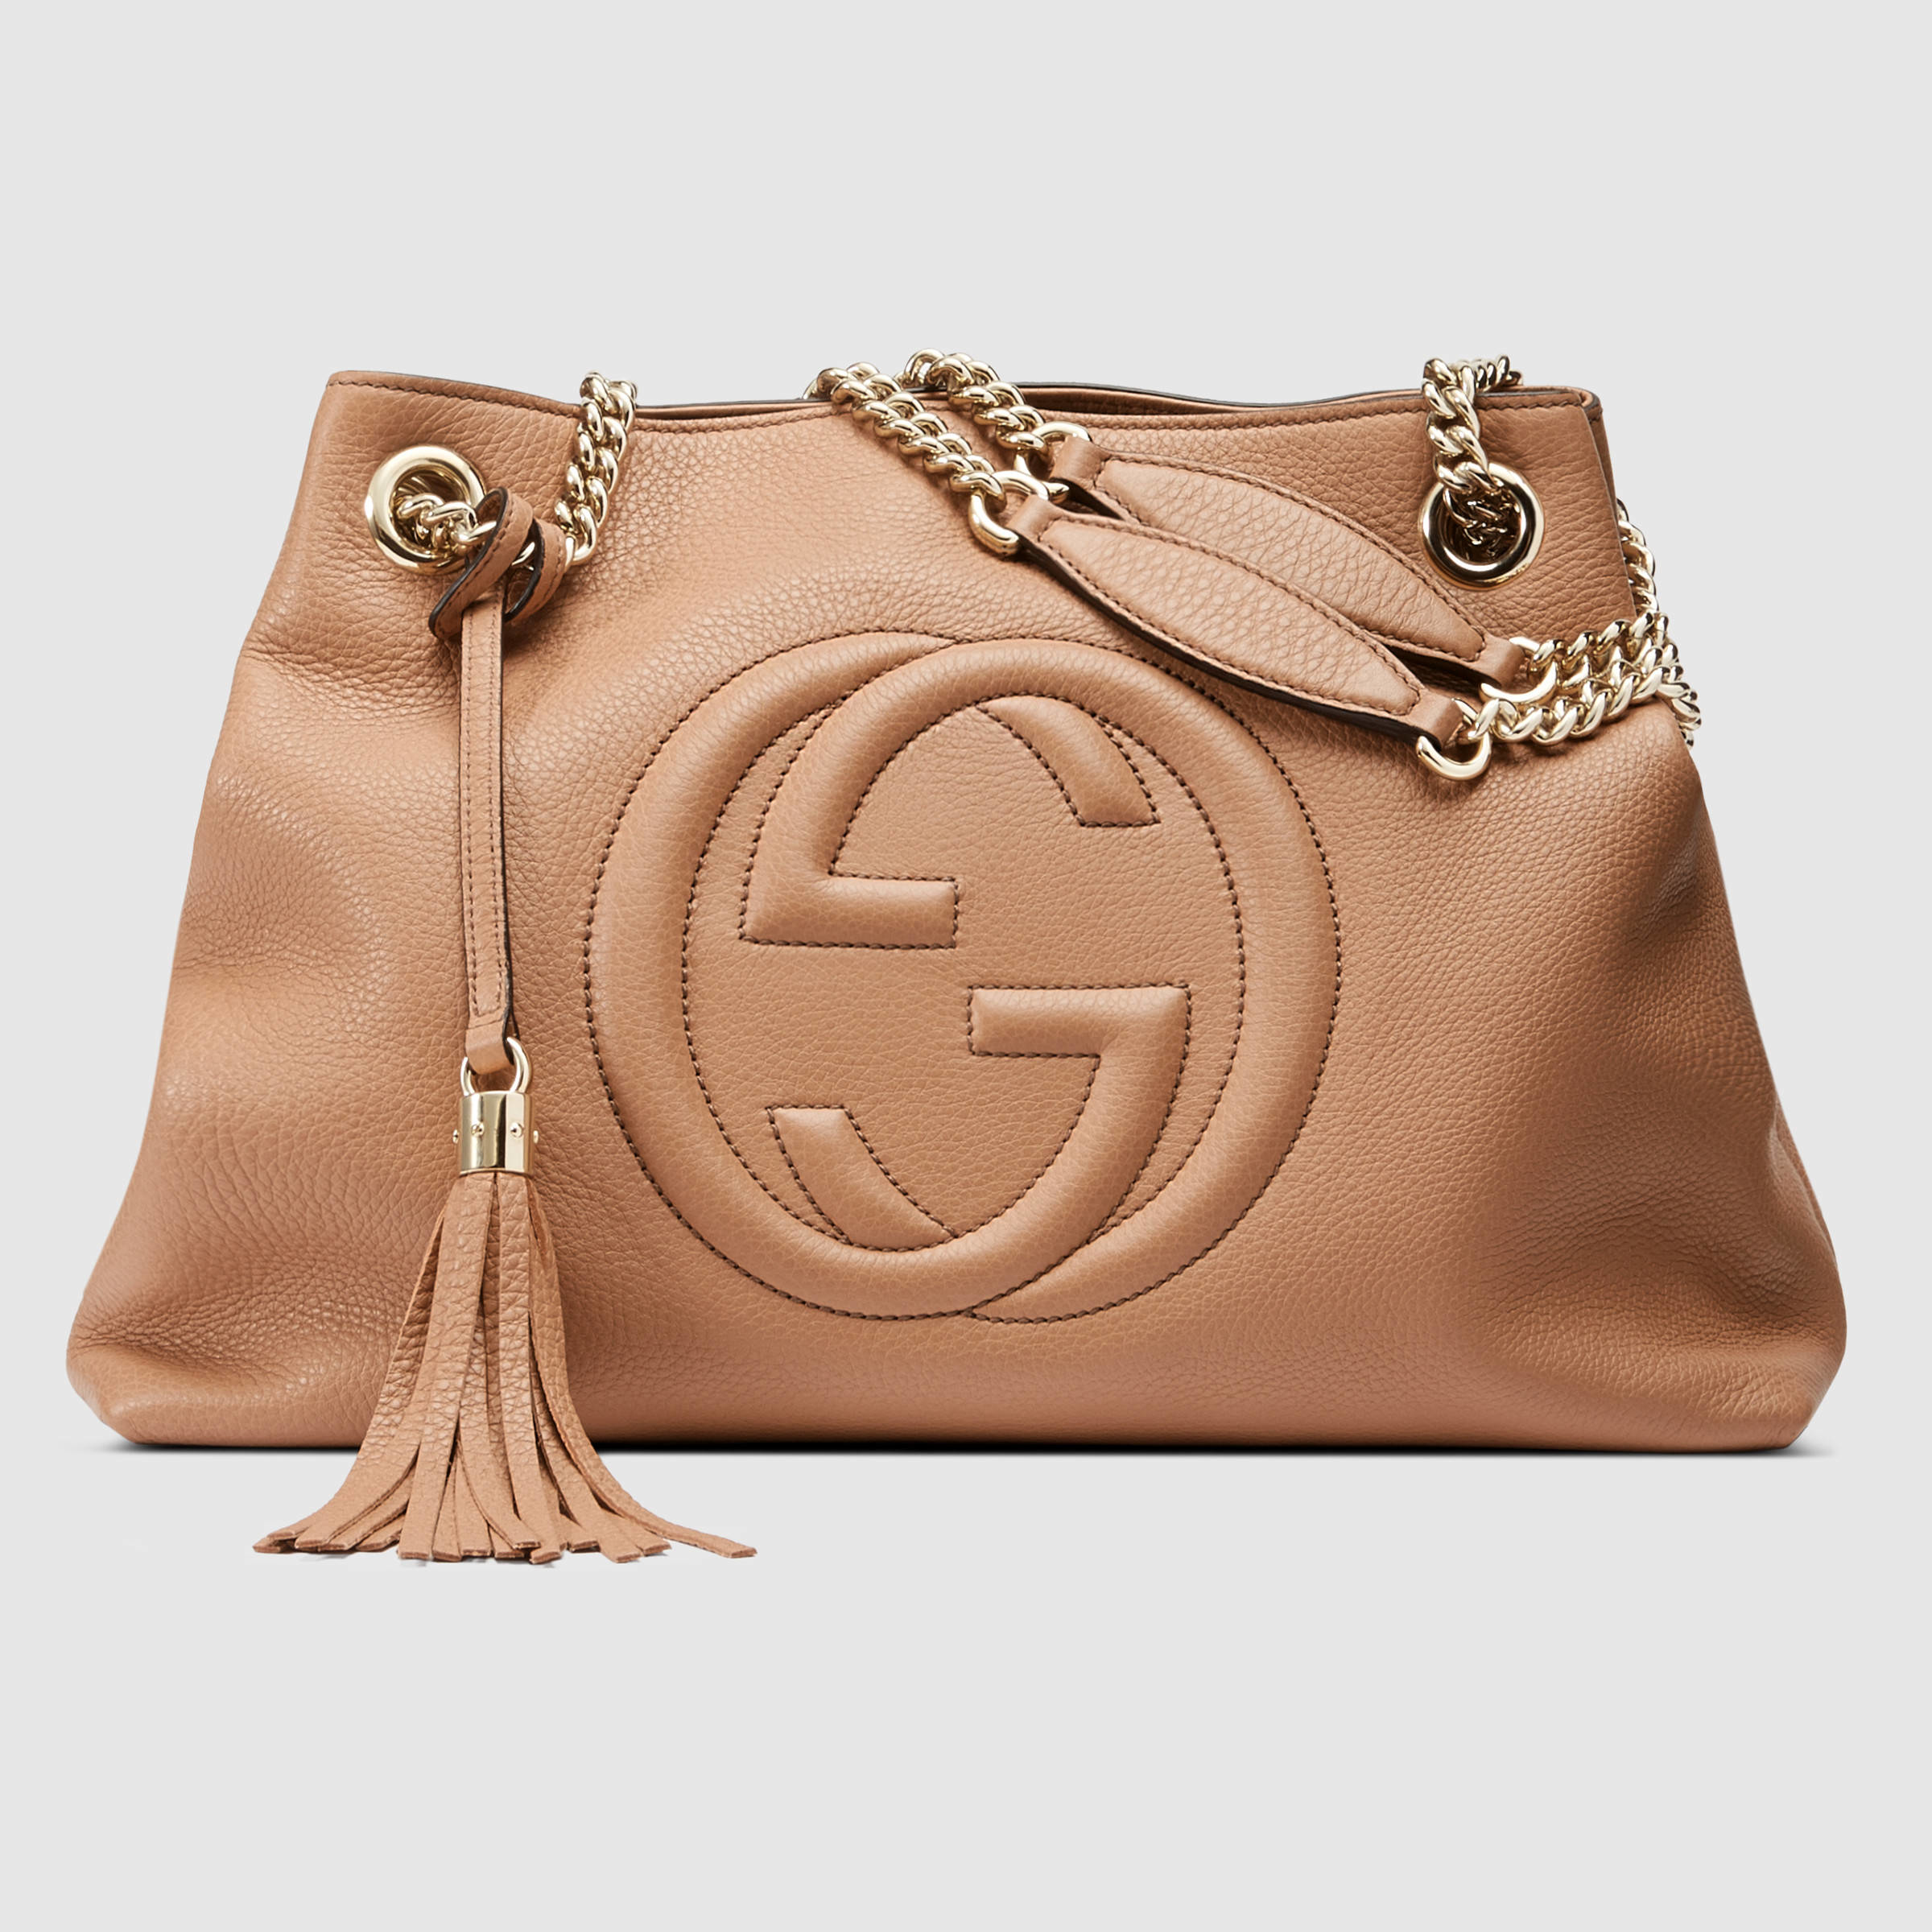 84d53a672b70 Gucci Soho Leather Shoulder Bag in Natural - Lyst